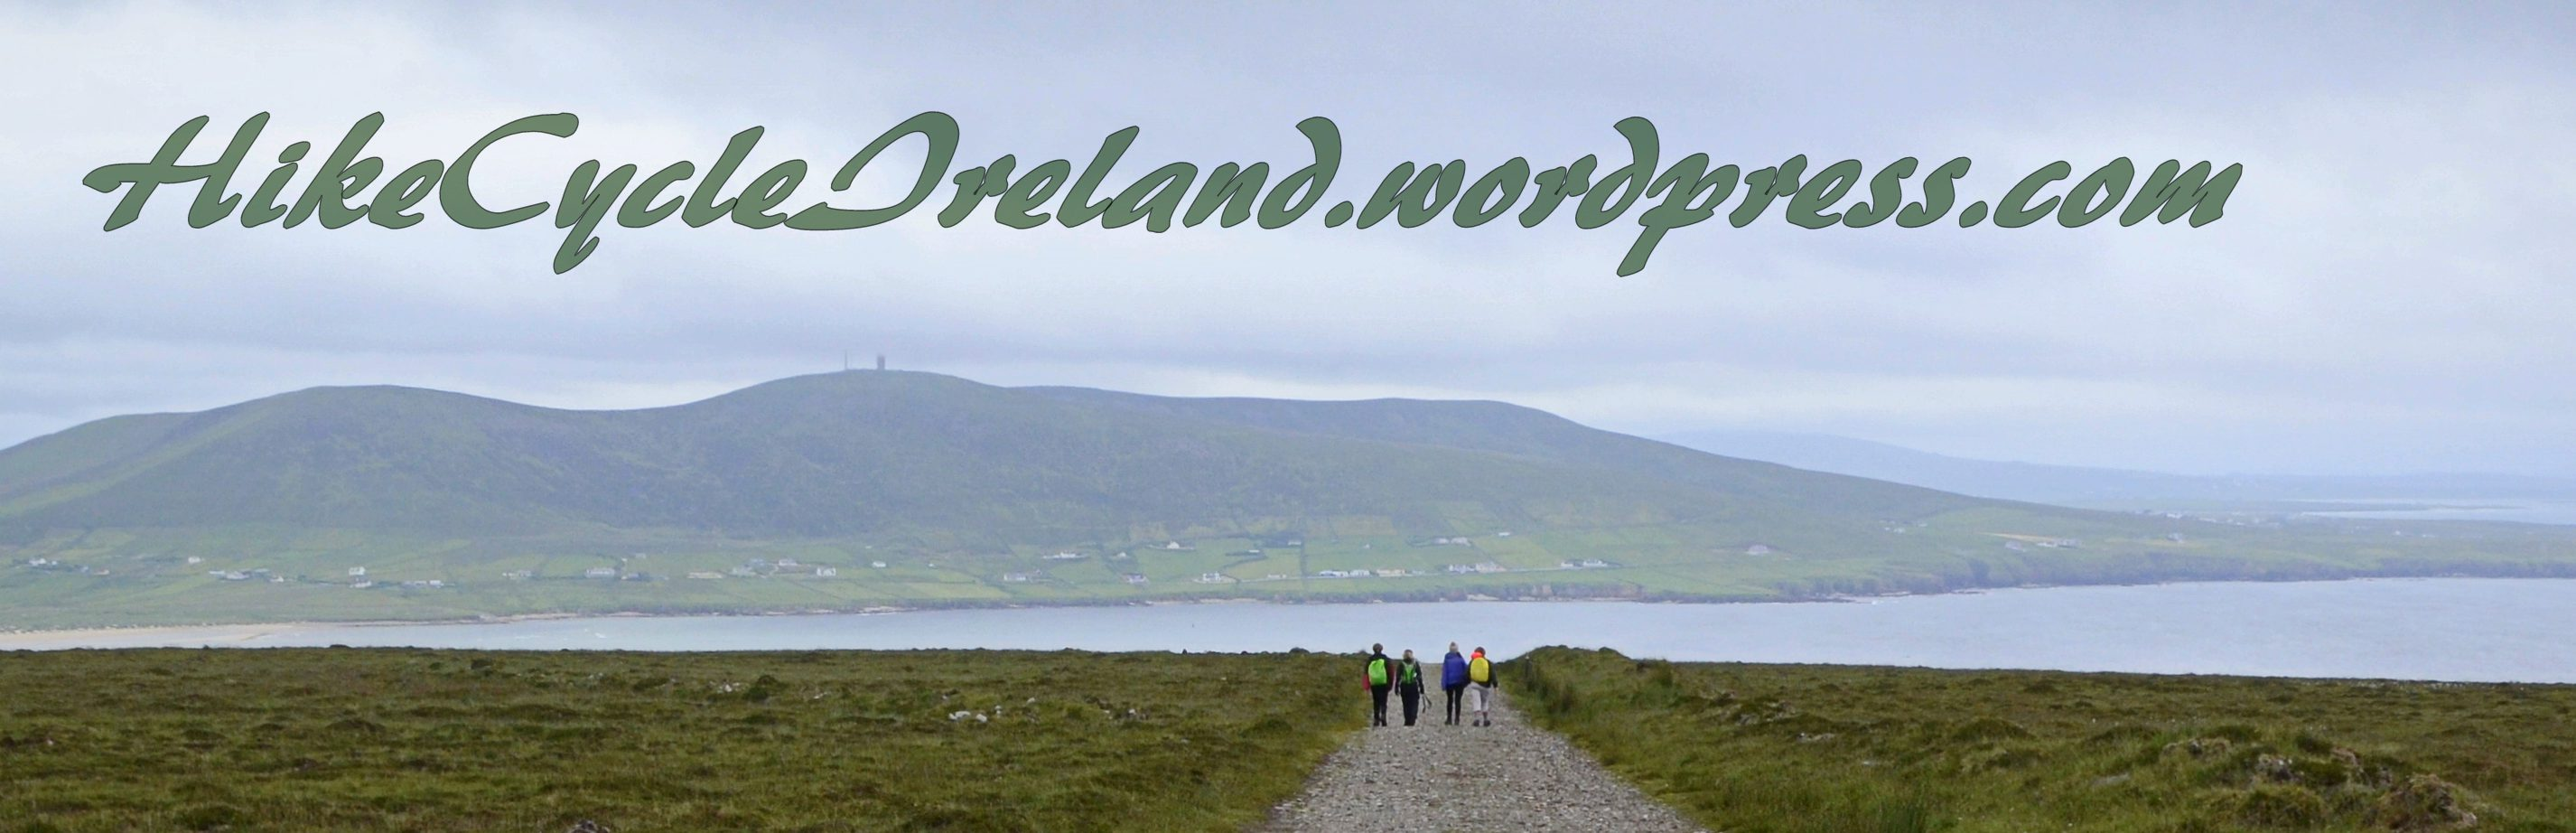 Hike Cycle Ireland